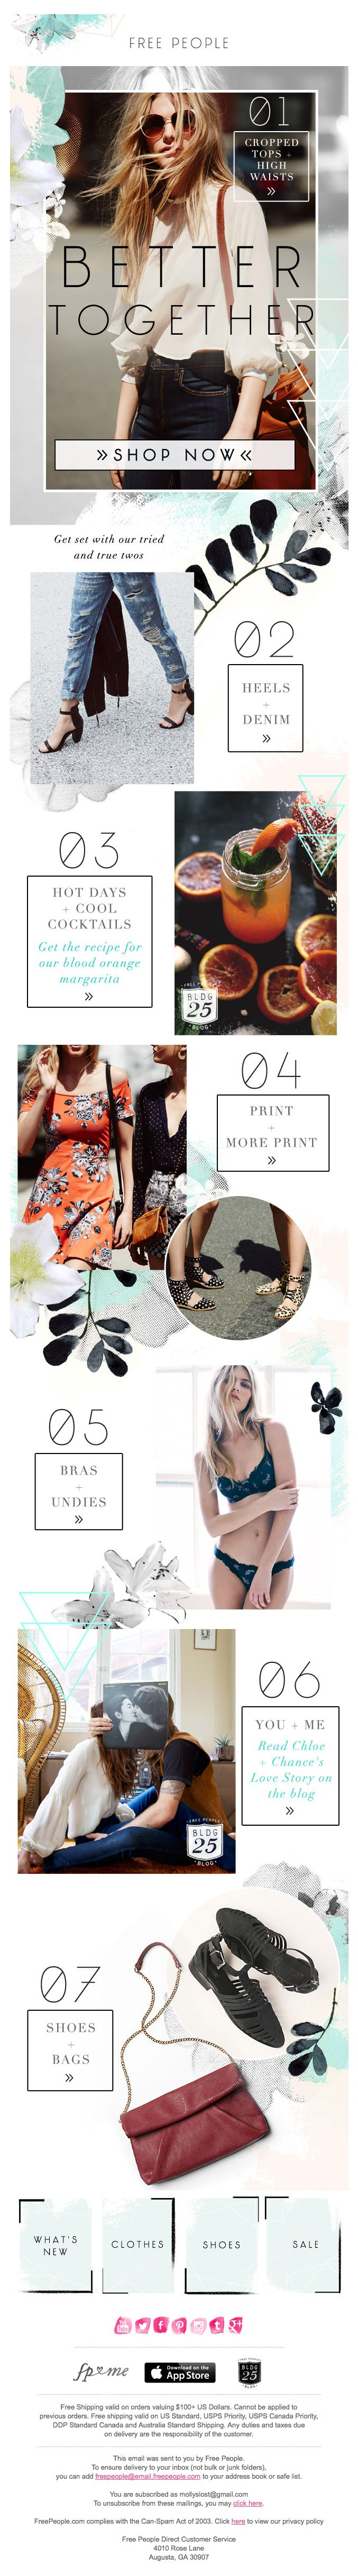 #freepeople #email #design